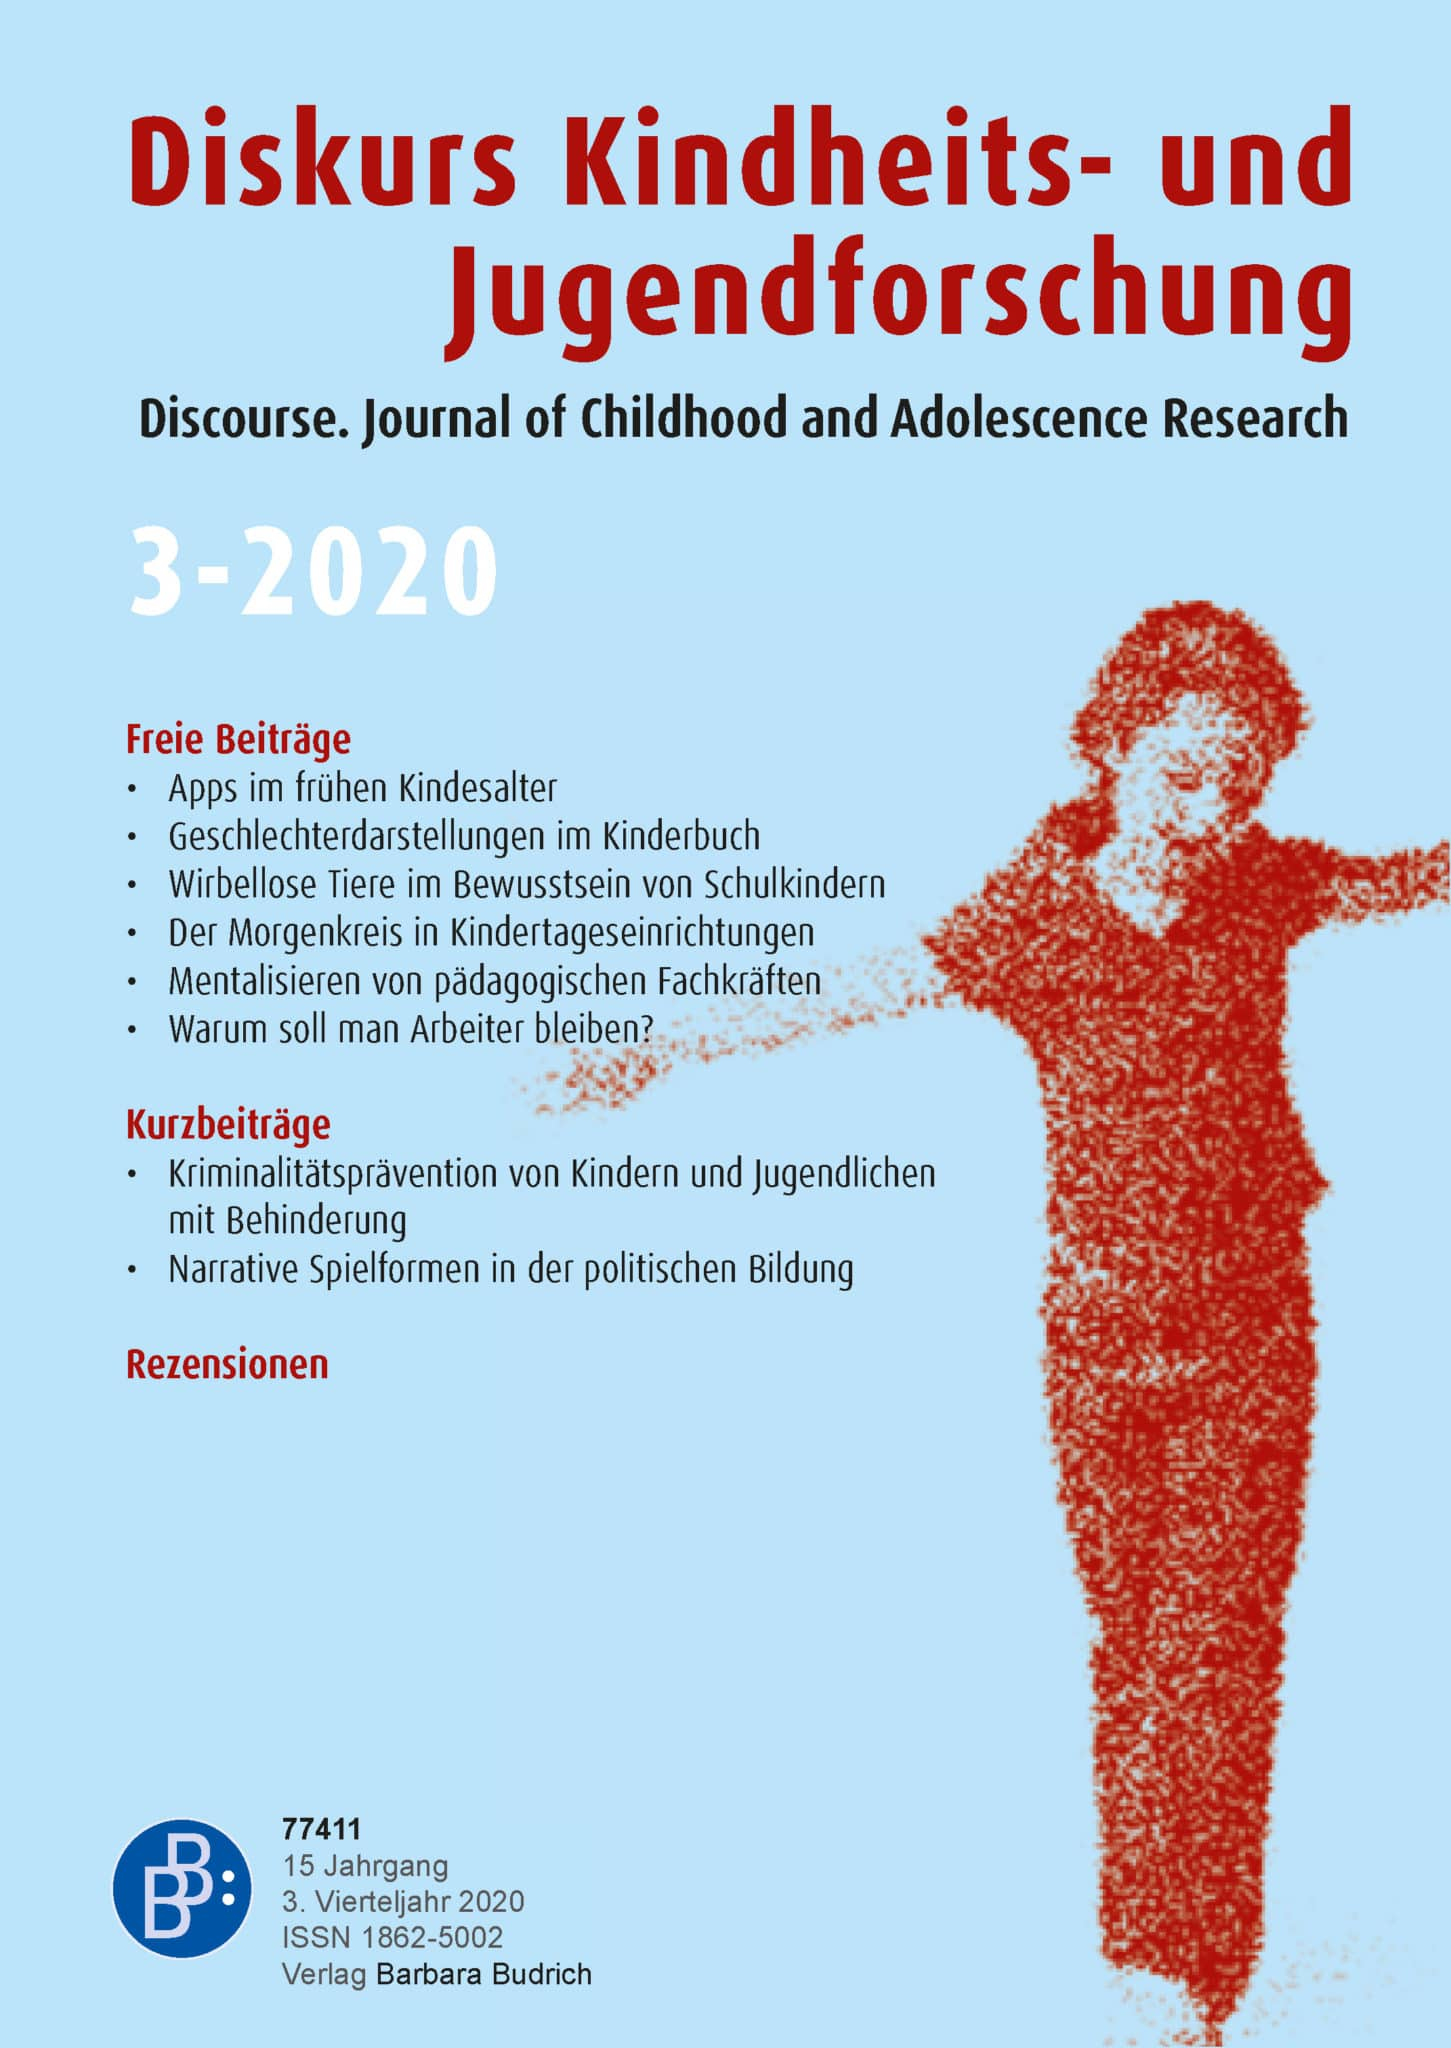 Diskurs Kindheits- und Jugendforschung / Discourse. Journal of Childhood and Adolescence Research 3-2020: Freie Beiträge